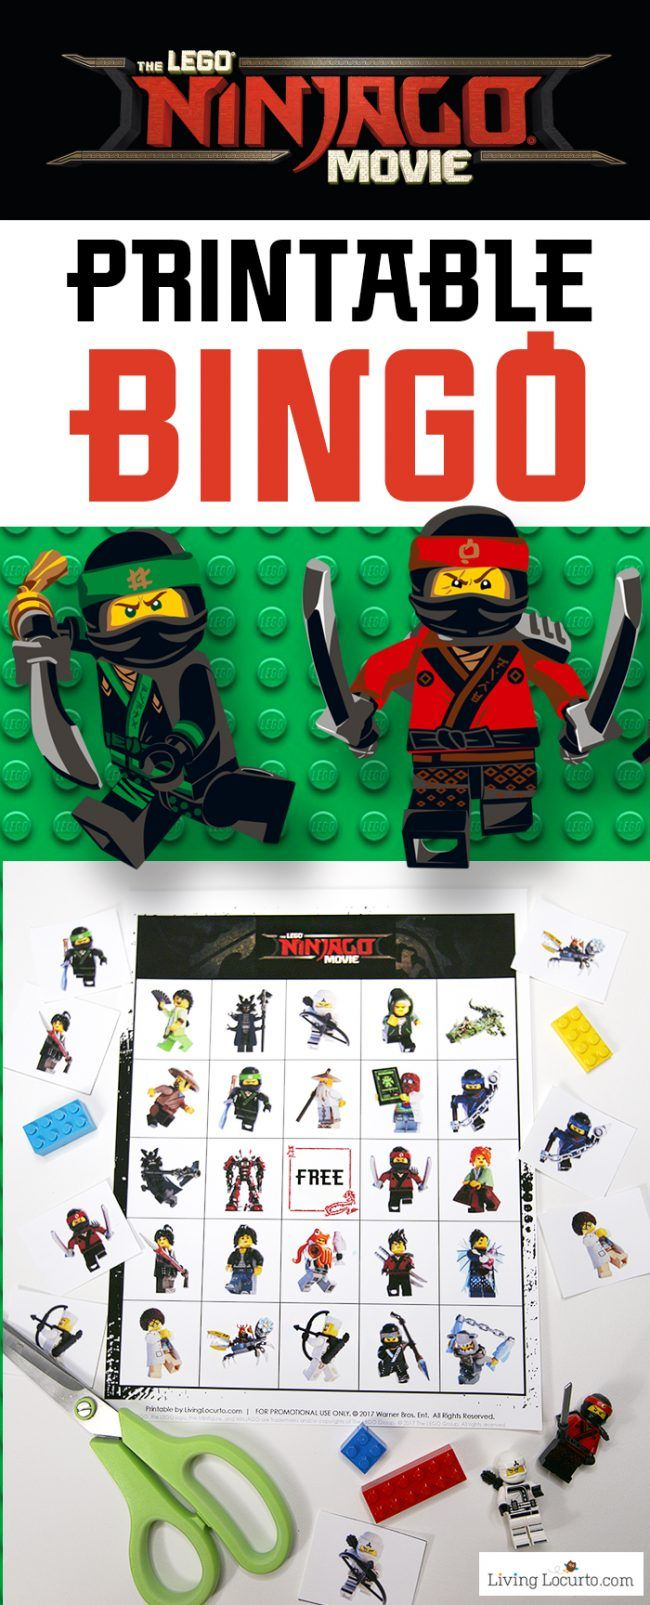 LEGO NINJAGO Movie Bingo free printable game. Fun kids activity for a birthday party or family game night! LEGO Bingo to celebrate The LEGO NINJAGO Movie in theaters September 22. Download this Printable LEGO Bingo Game for kid fun. #LEGONINJAGOMovie #sponsored